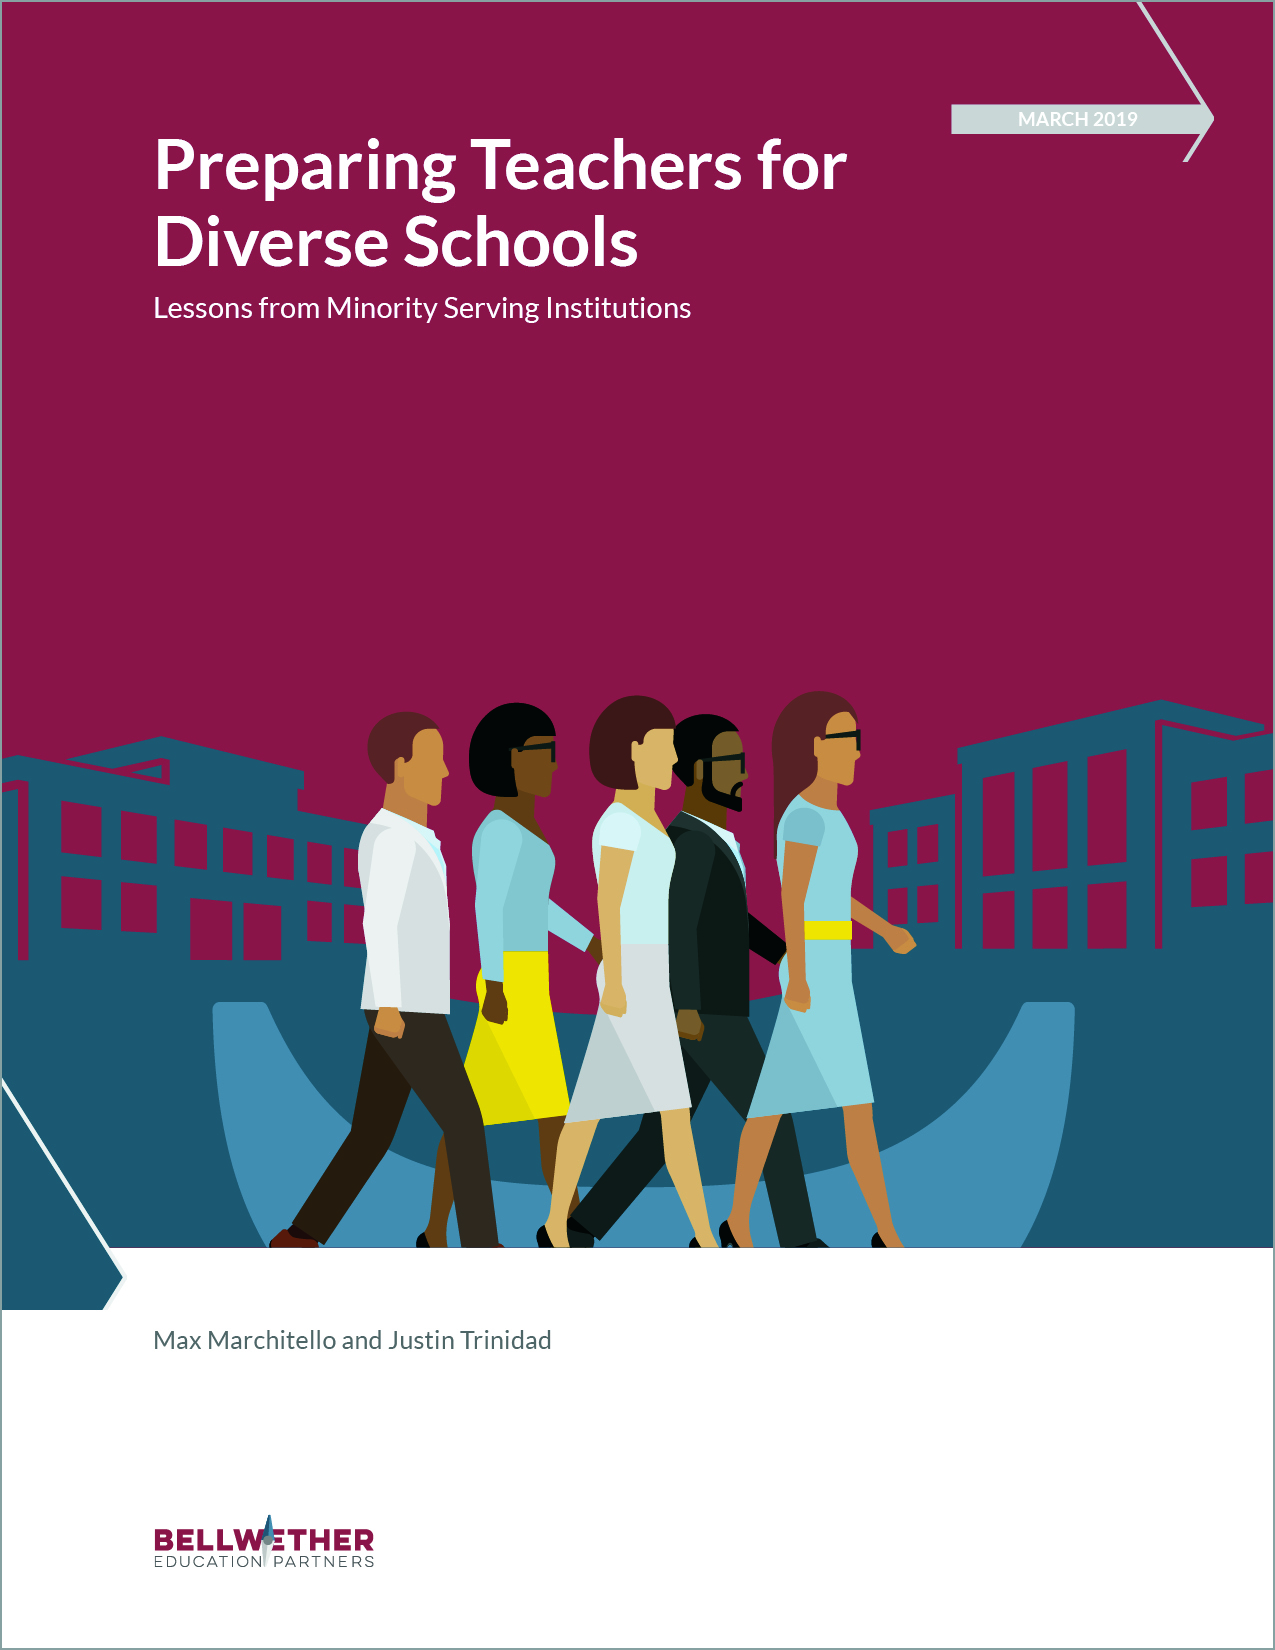 Title image for Bellwether publication Preparing Teachers for Diverse Schools, March 2019